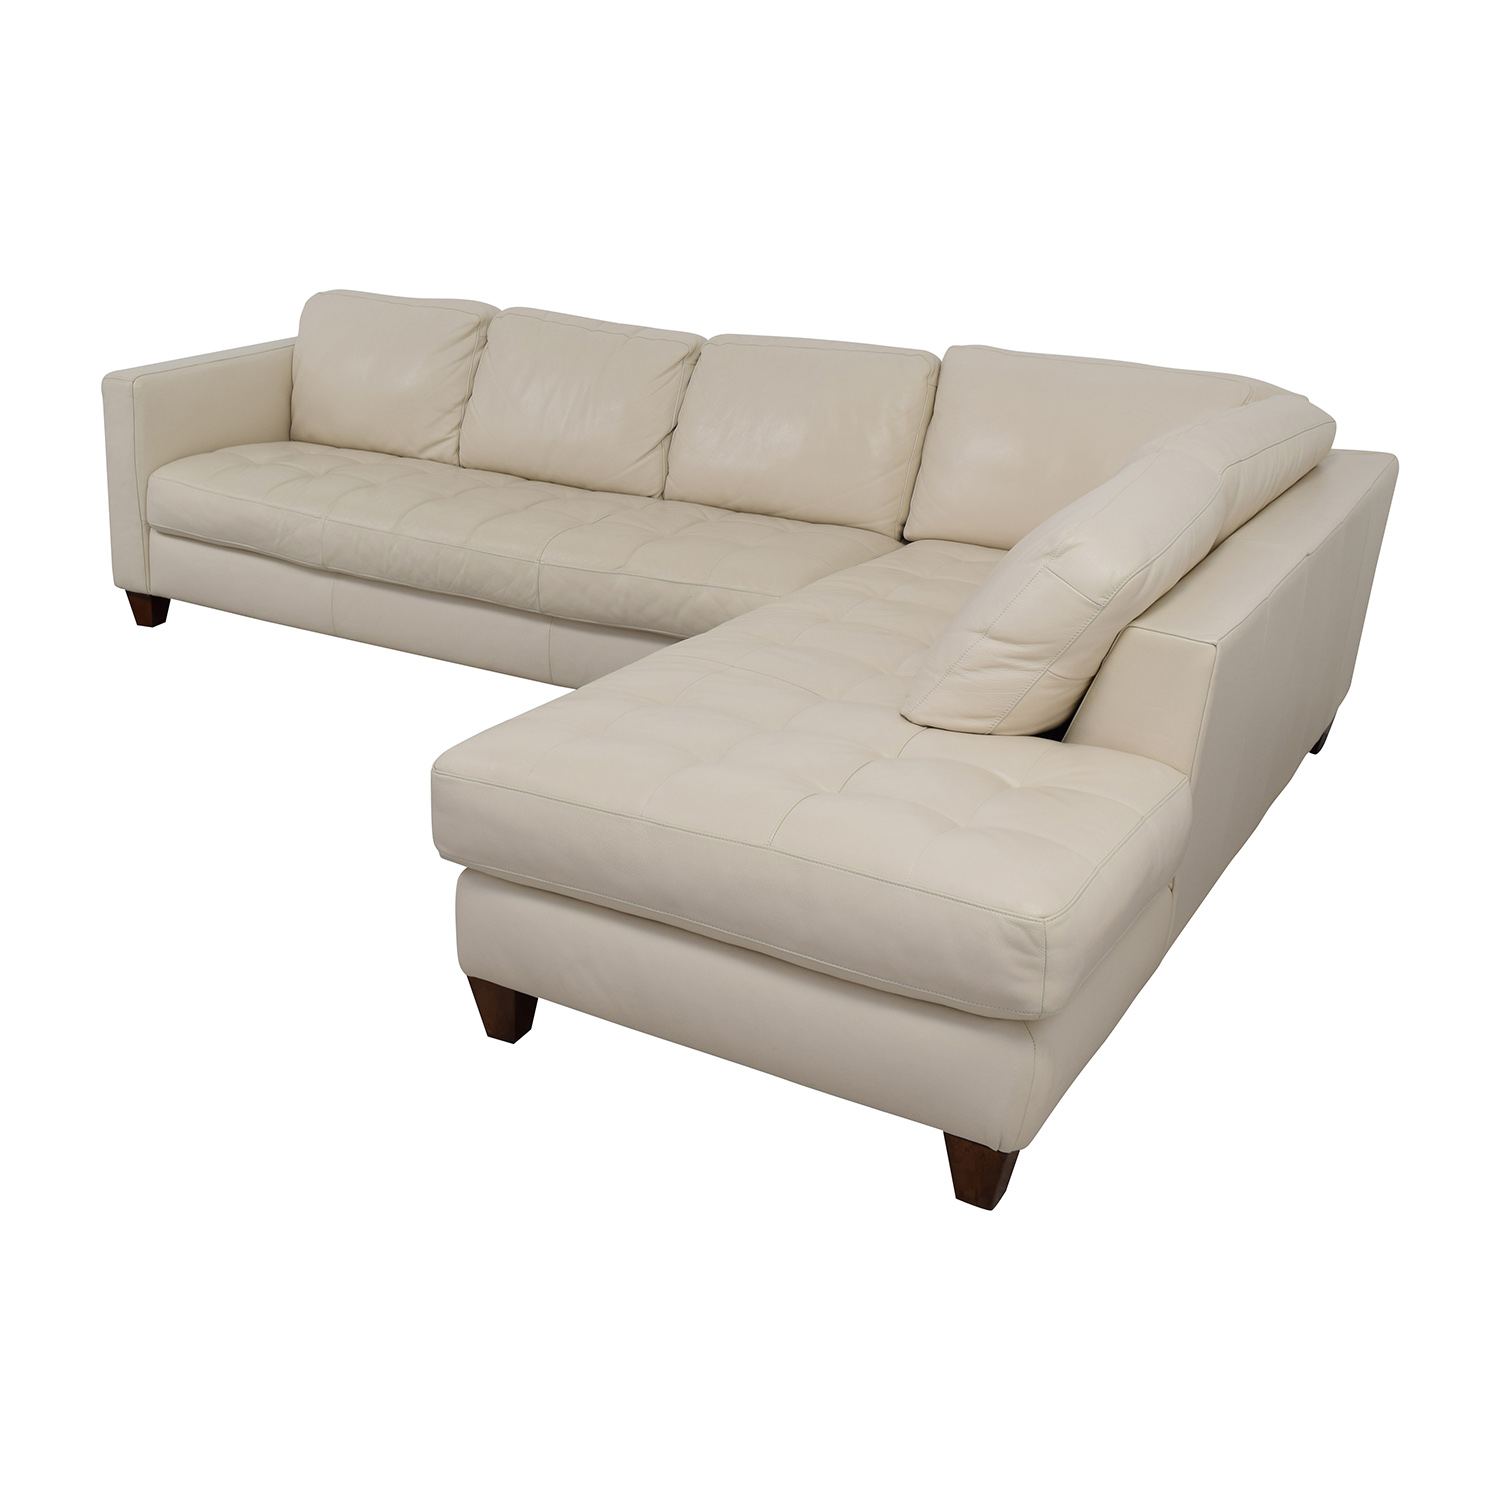 10 Best Collection Of Off White Leather Sofas: Macy's Macy's Milano White Leather Two Piece